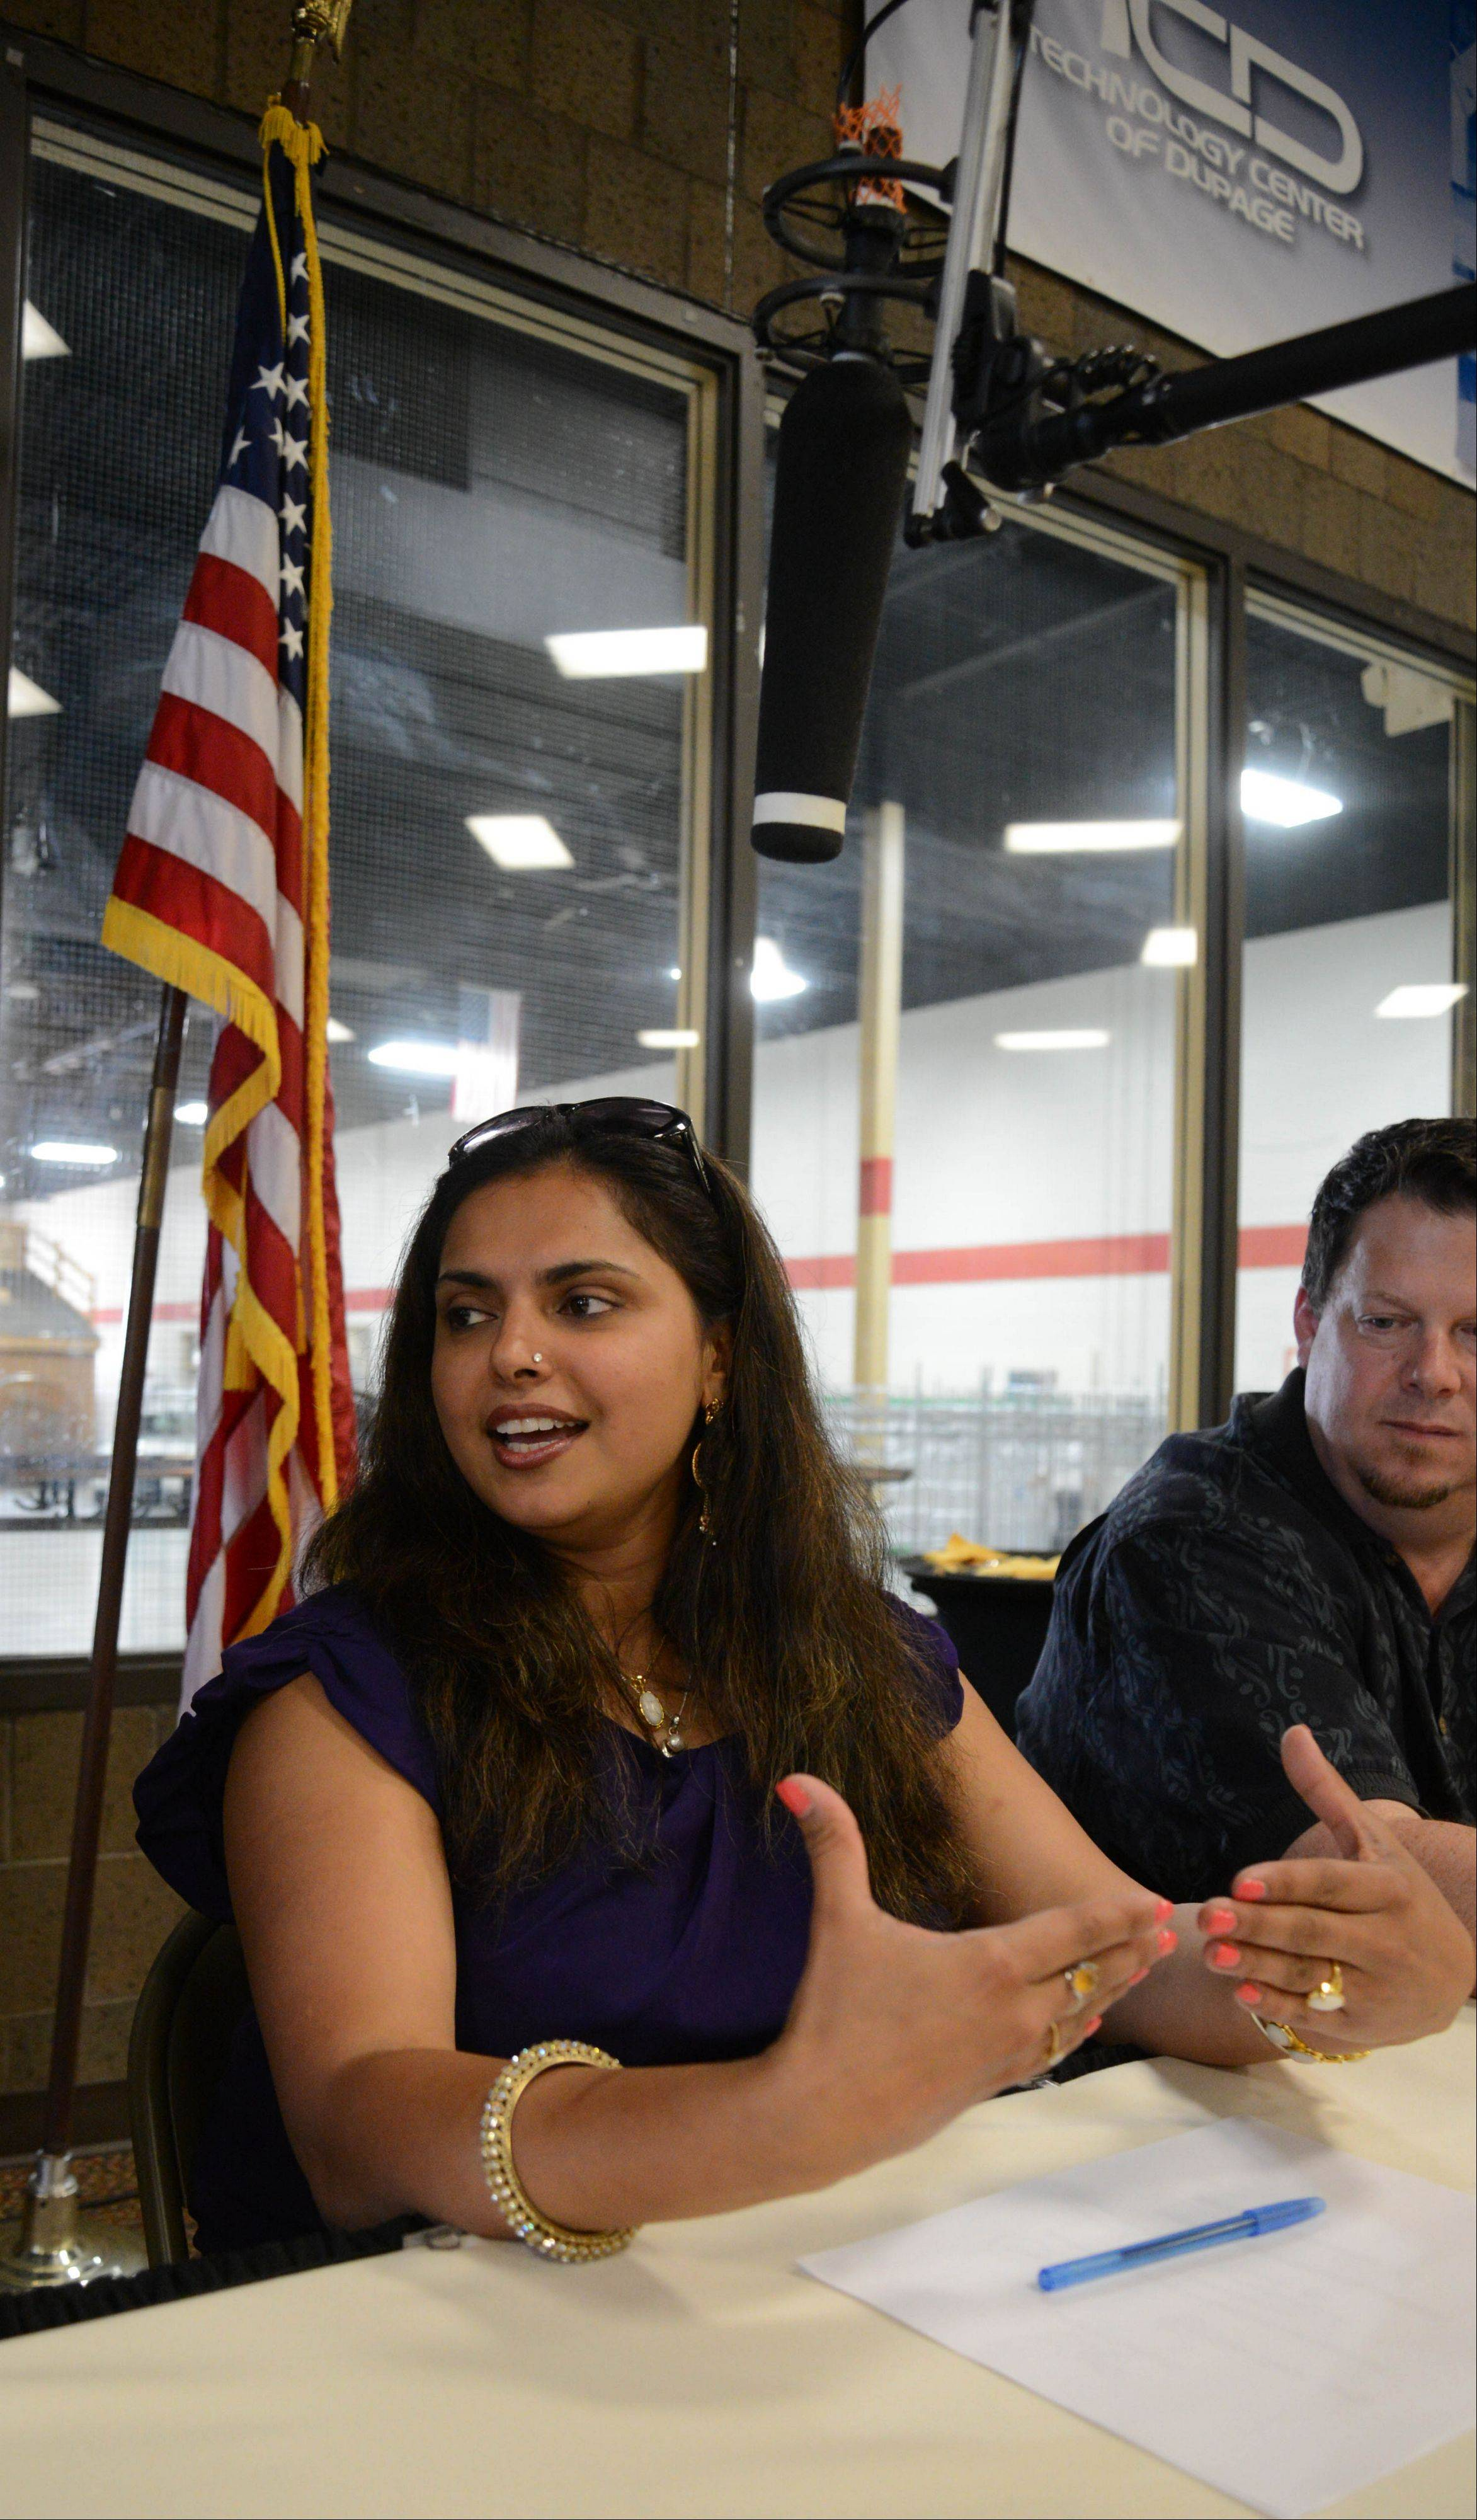 """Chopped"" judge Maneet Chauhan talks about the dishes created by three culinary students at the Technology Center of DuPage before announcing the local winner of The Cutting Edge Tour."